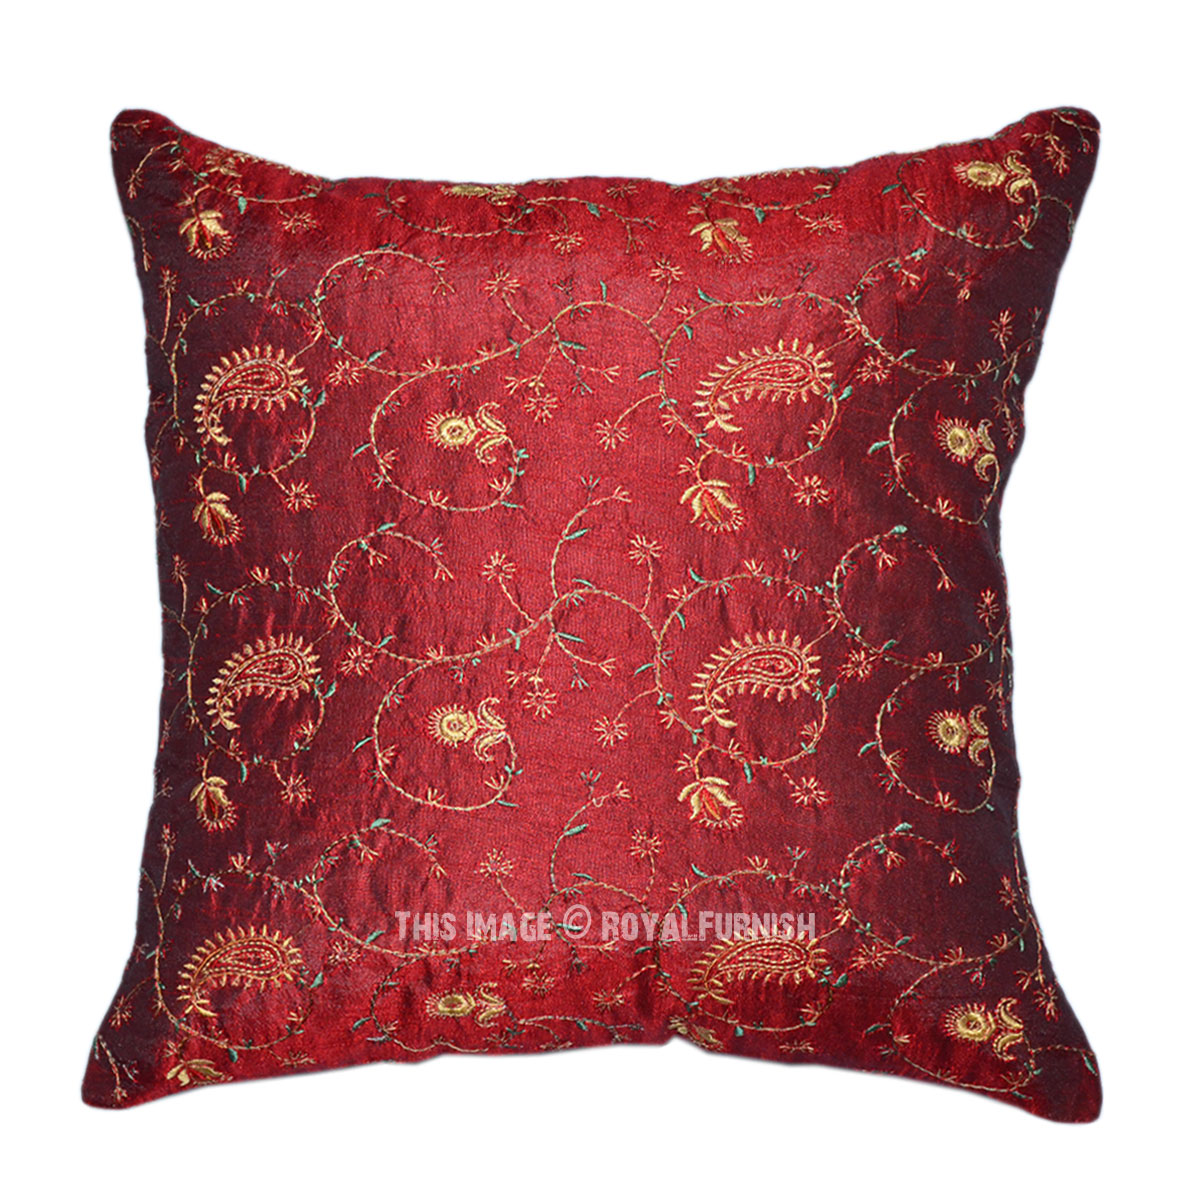 Red Indian Floral Embroidered Decorative Silk Throw Pillow Case - RoyalFurnish.com